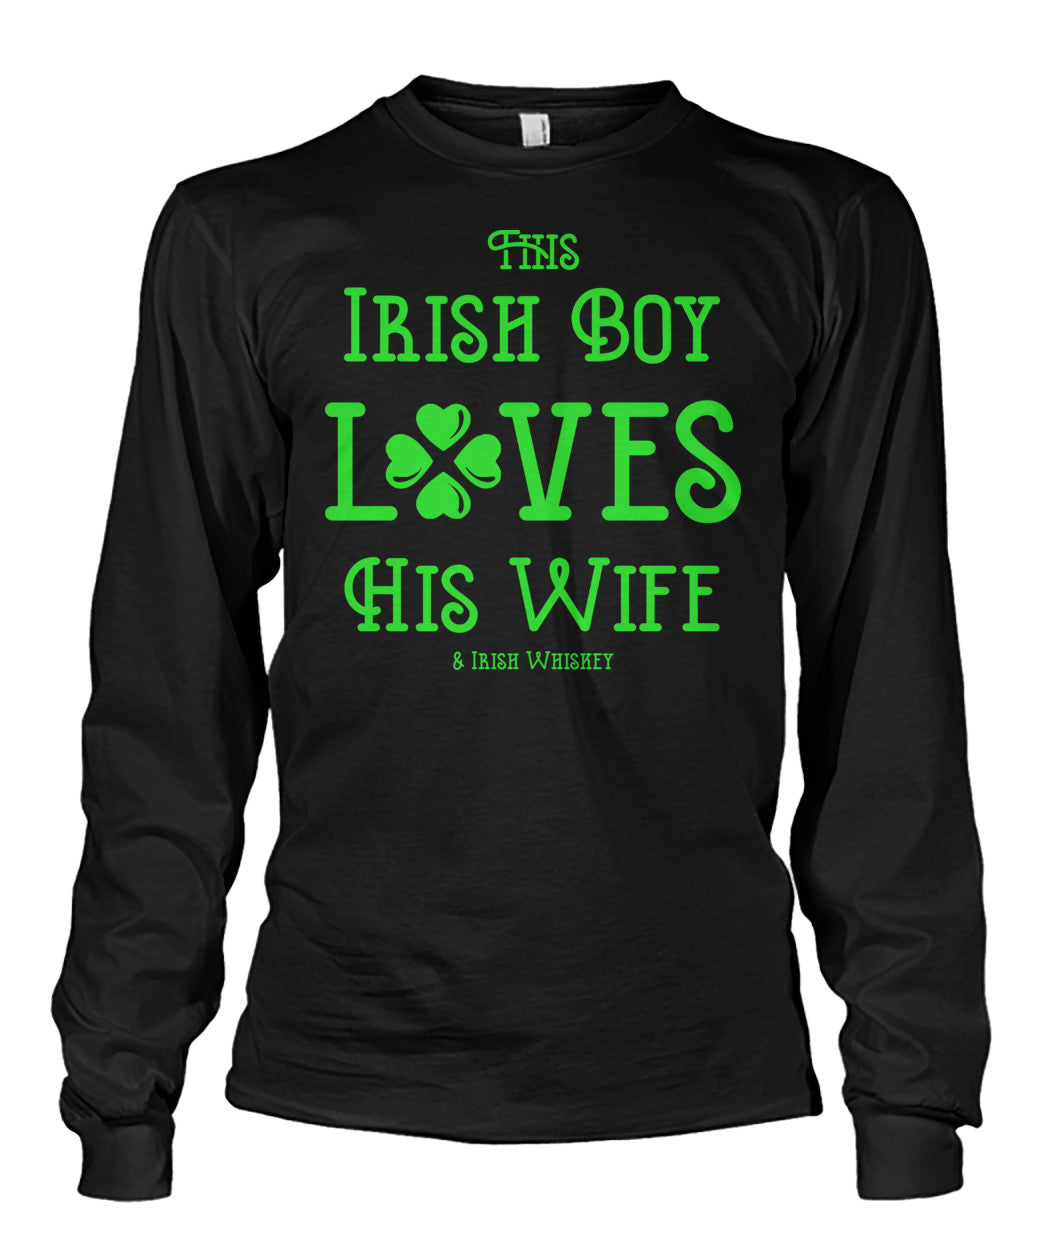 This Irish Boy Loves His Wife & Whiskey